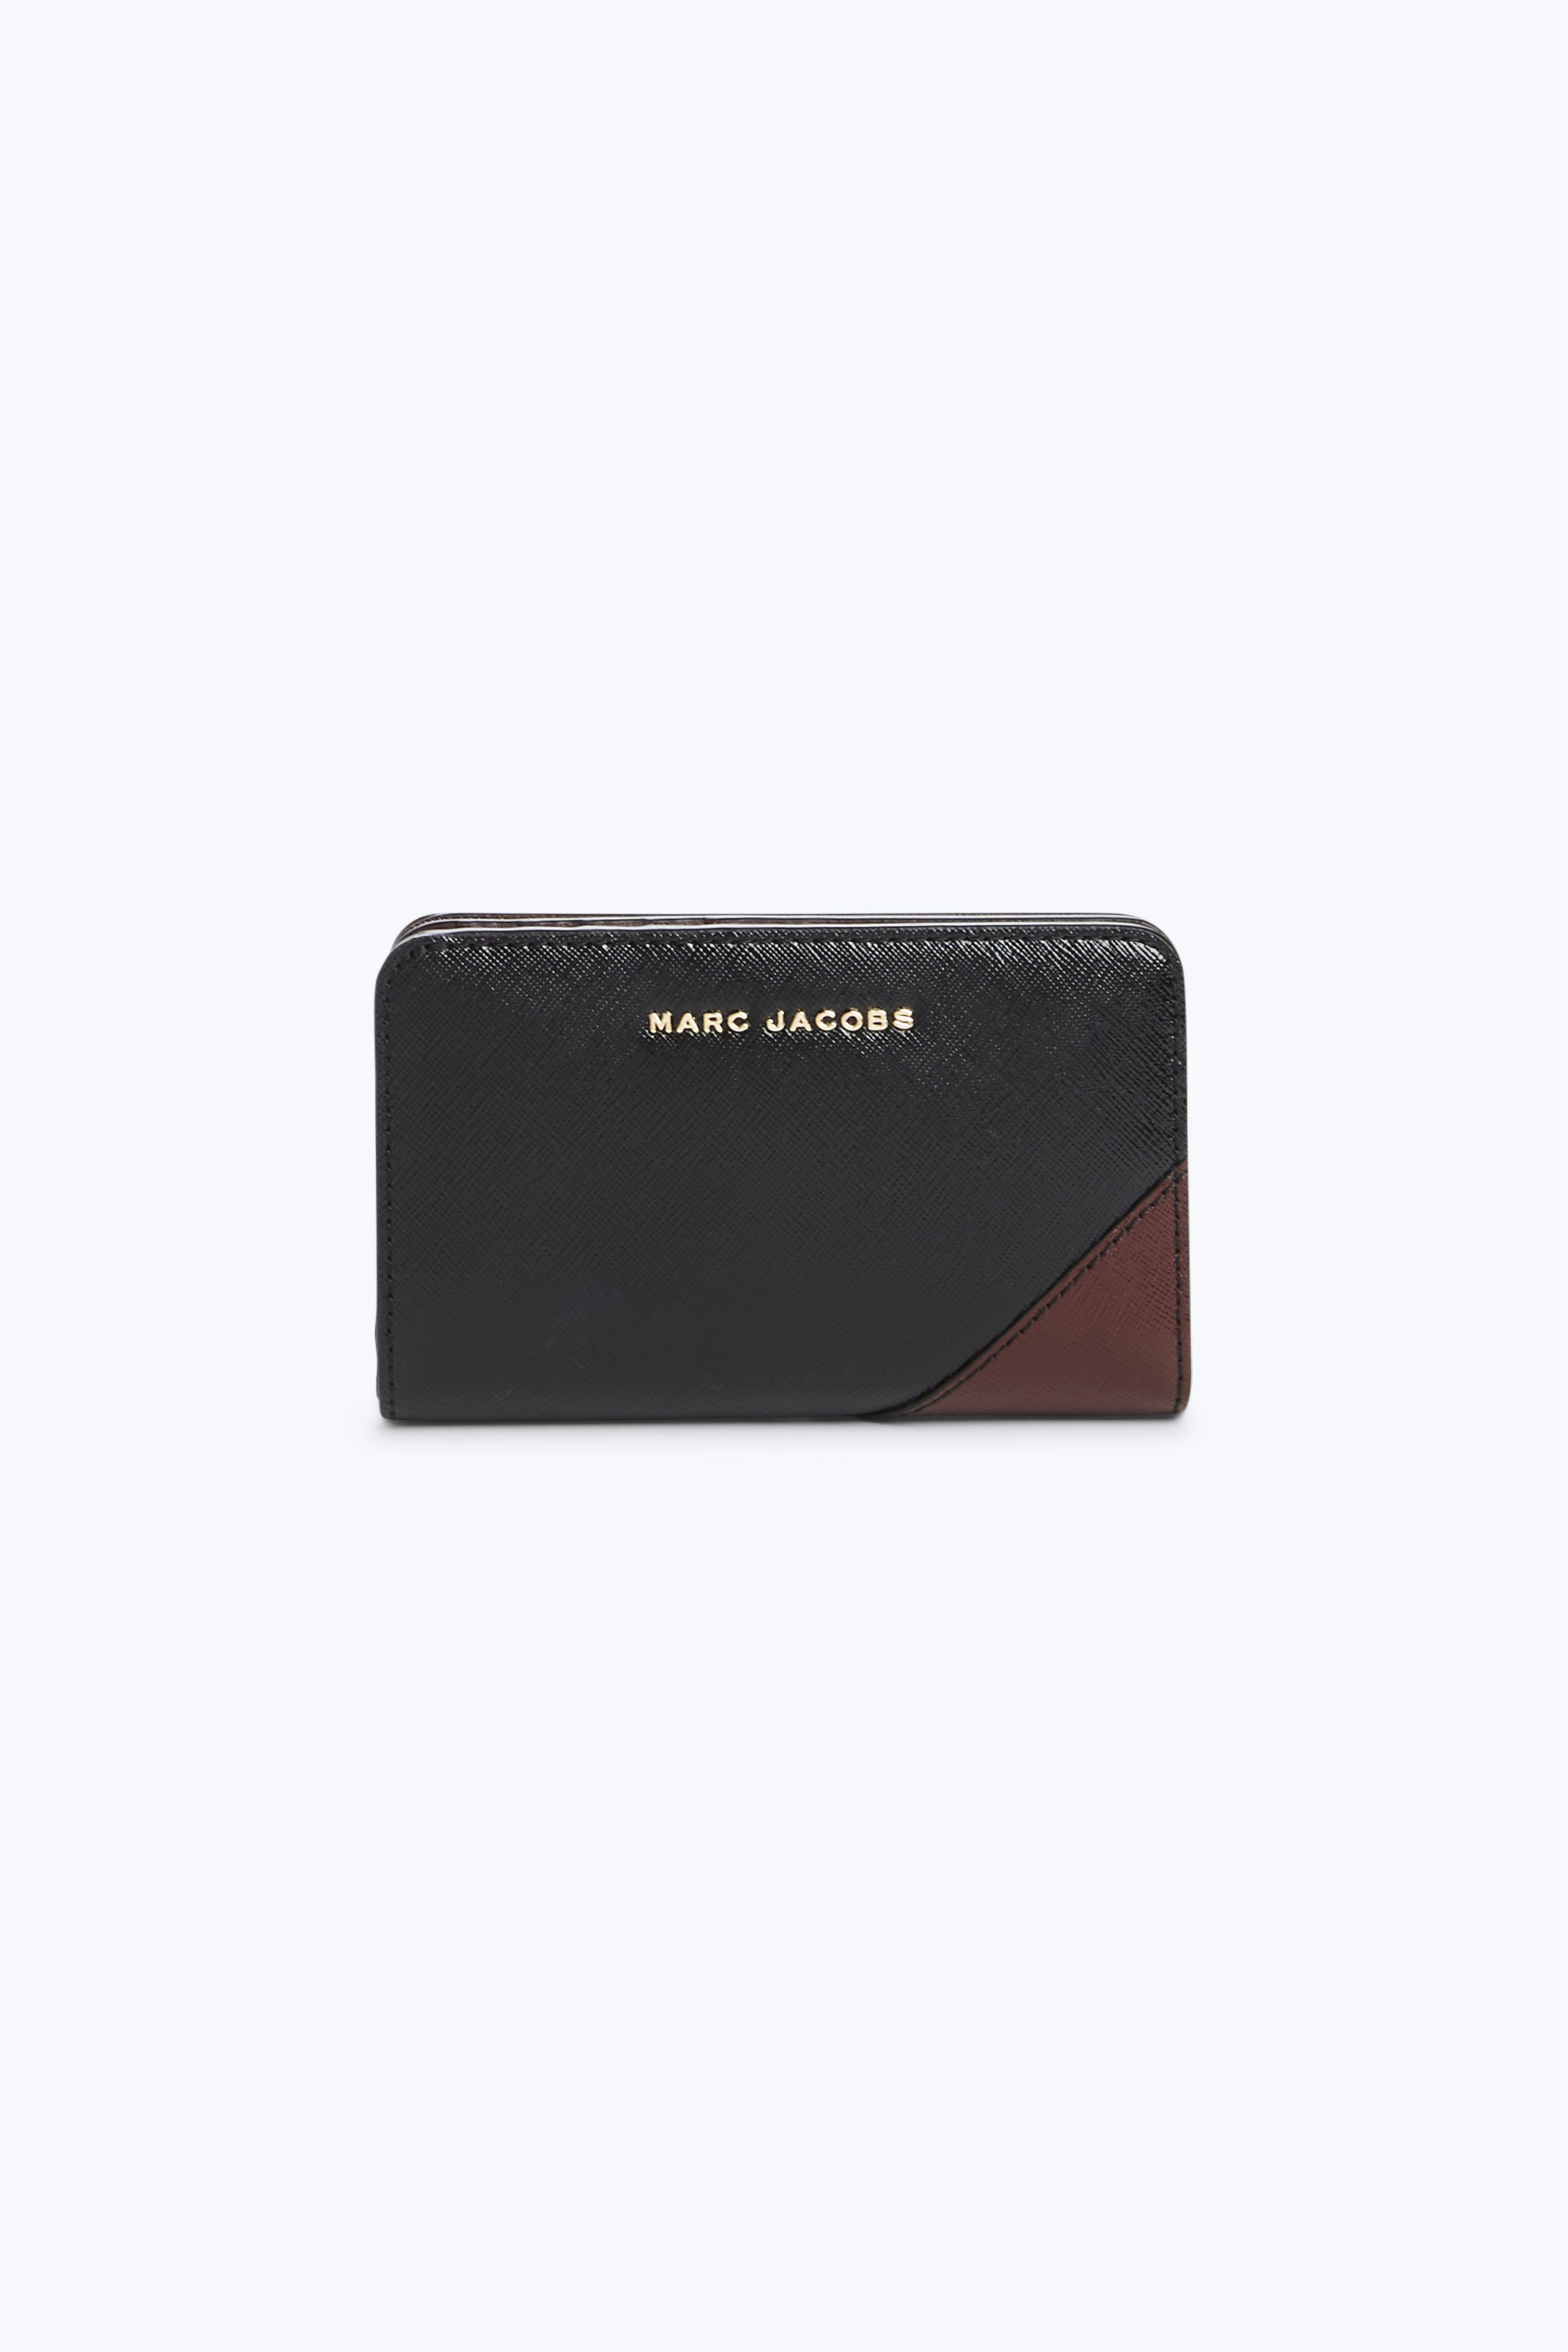 Marc Jacobs Saffiano Metal Letters Compact Wallet In Black Multi